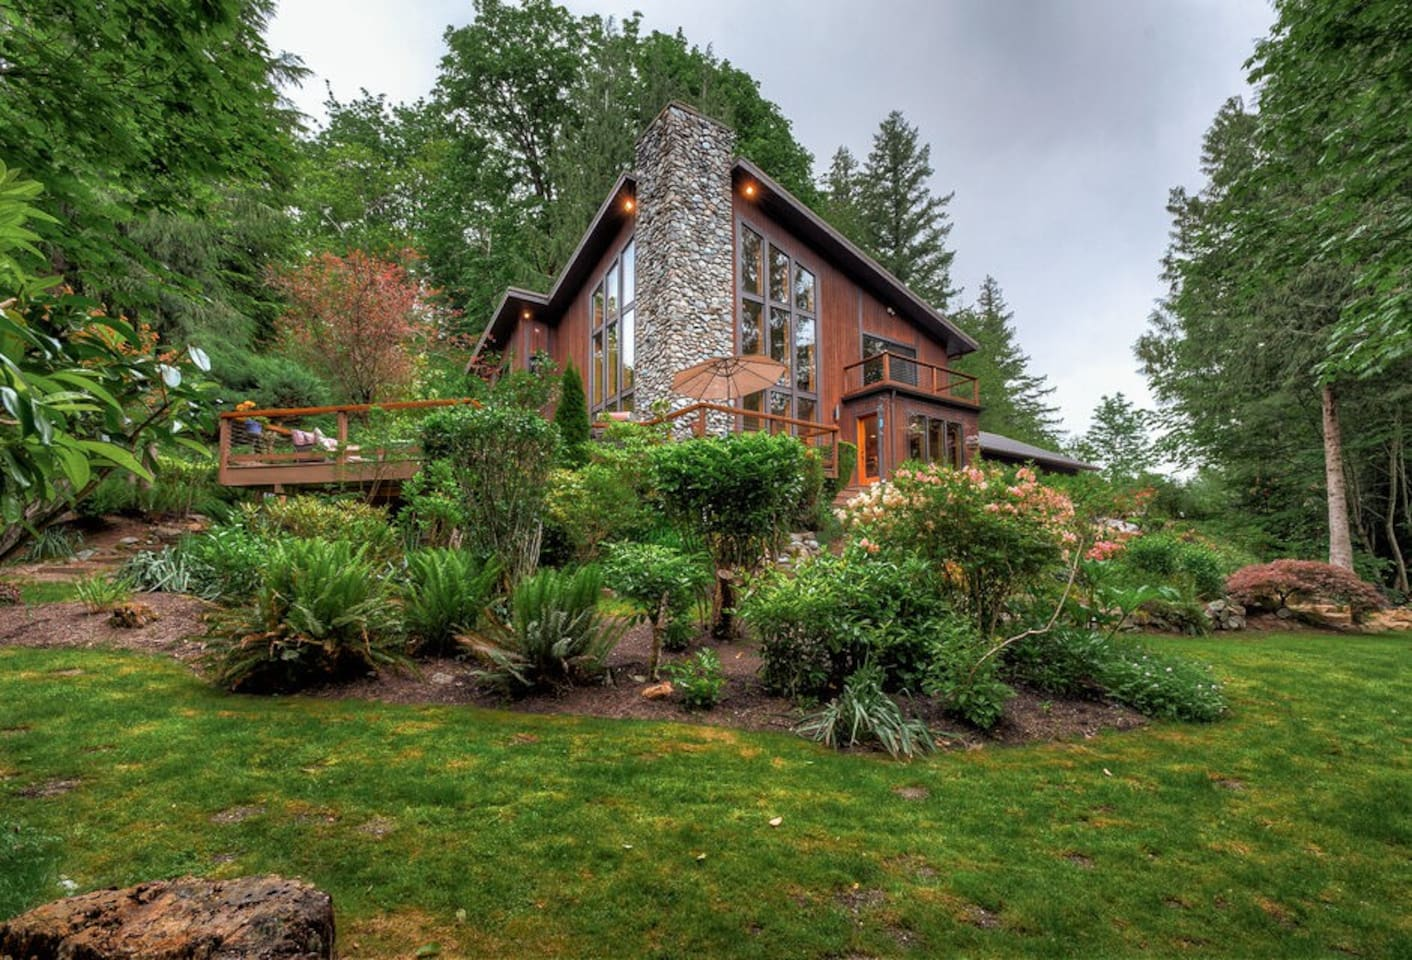 Welcome to Wallace Falls Retreat! Luxury on the river, surrounded by wilderness